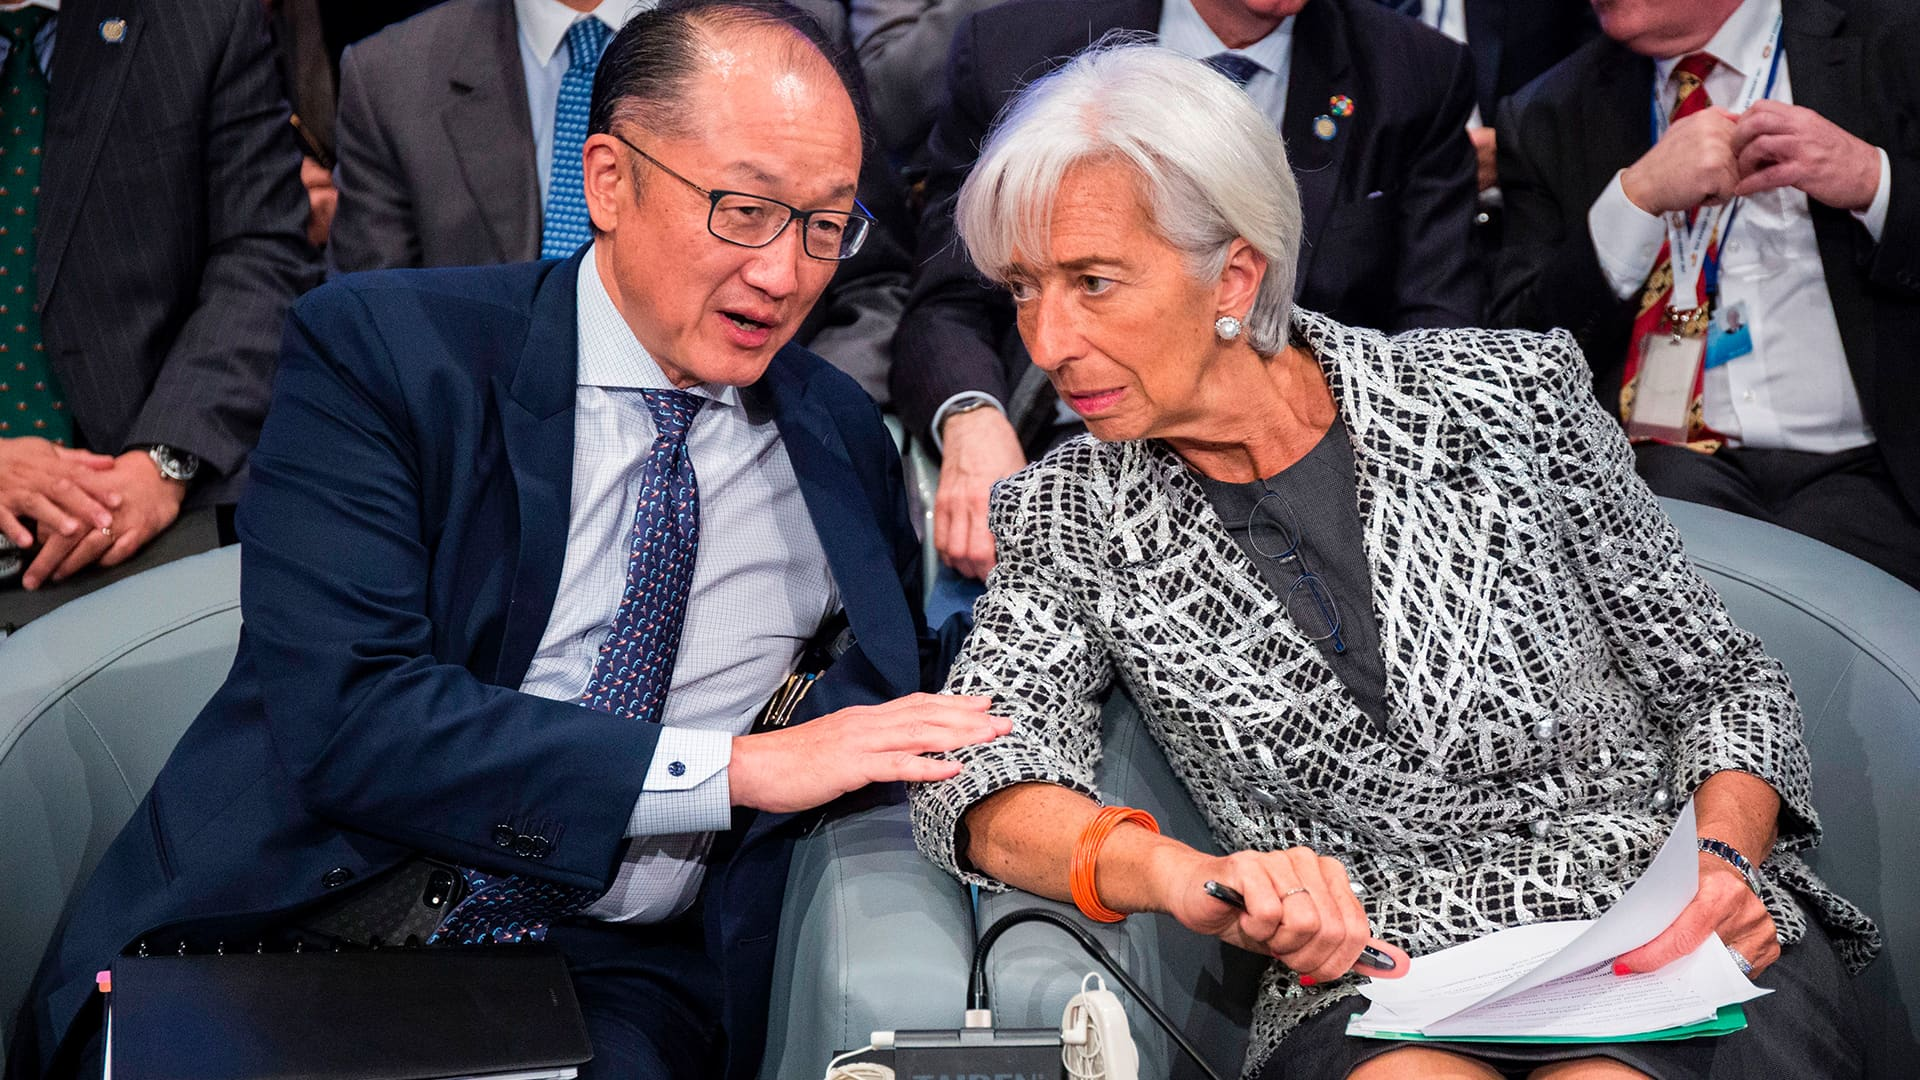 The next Lagarde? Europe searches for one of its own to take the IMF job